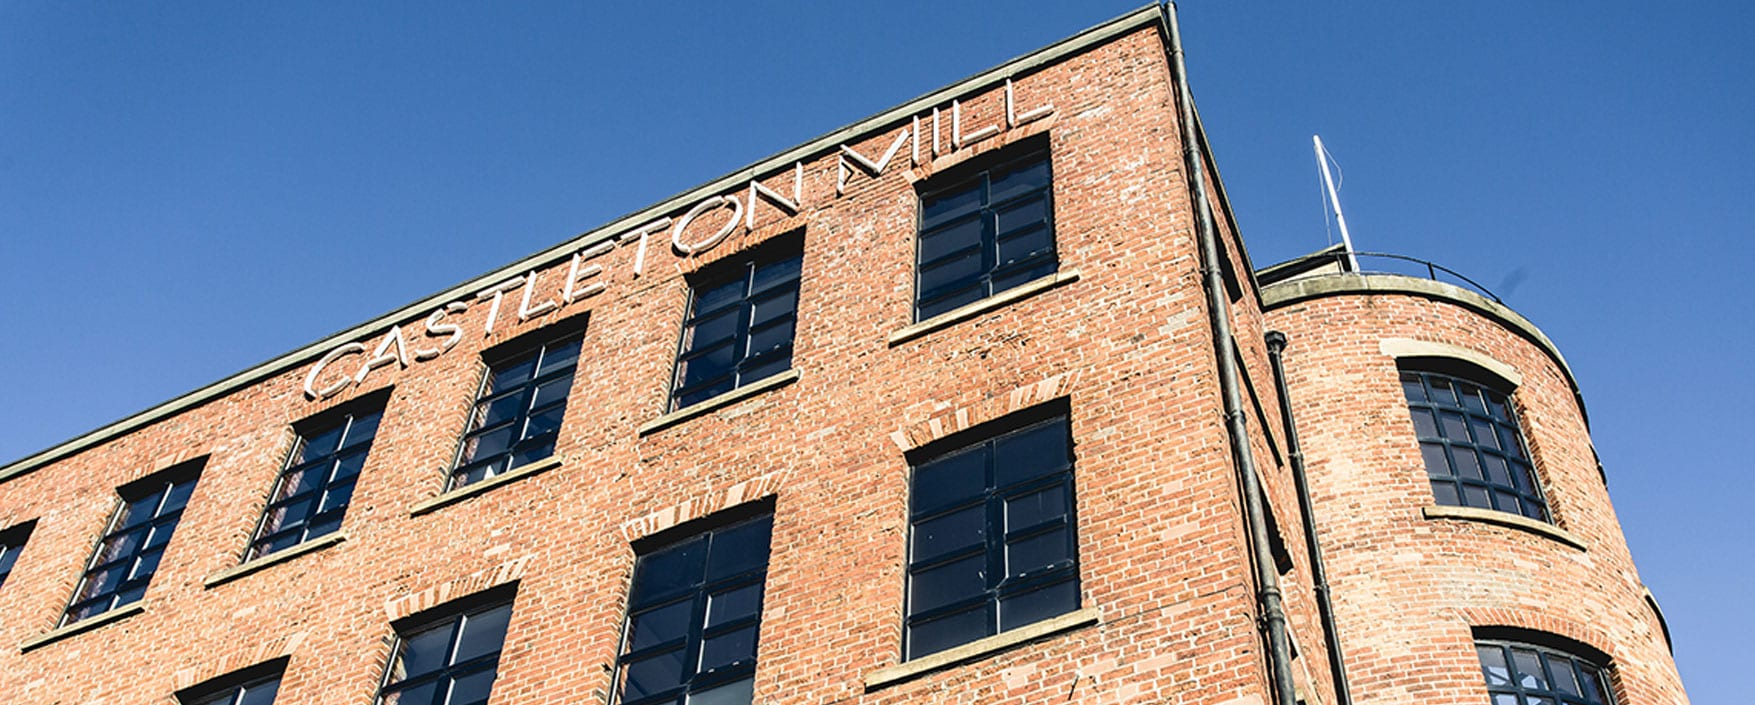 Castleton Mill Architectural Emporium Interior Office Listed Building